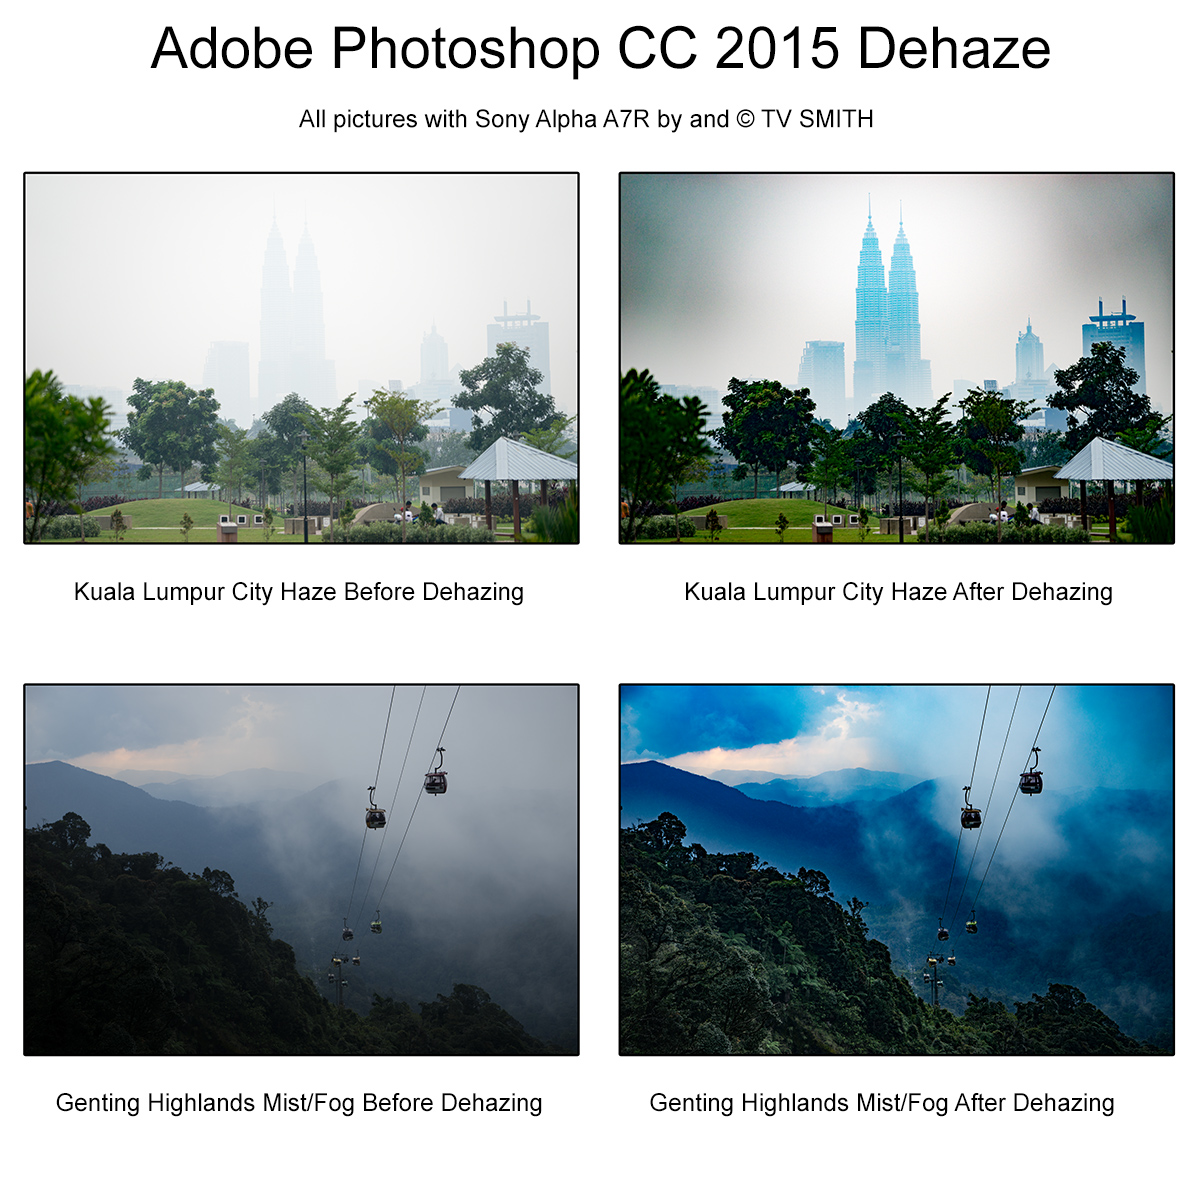 Adobe Photoshop CC 2015 Dehaze Demo